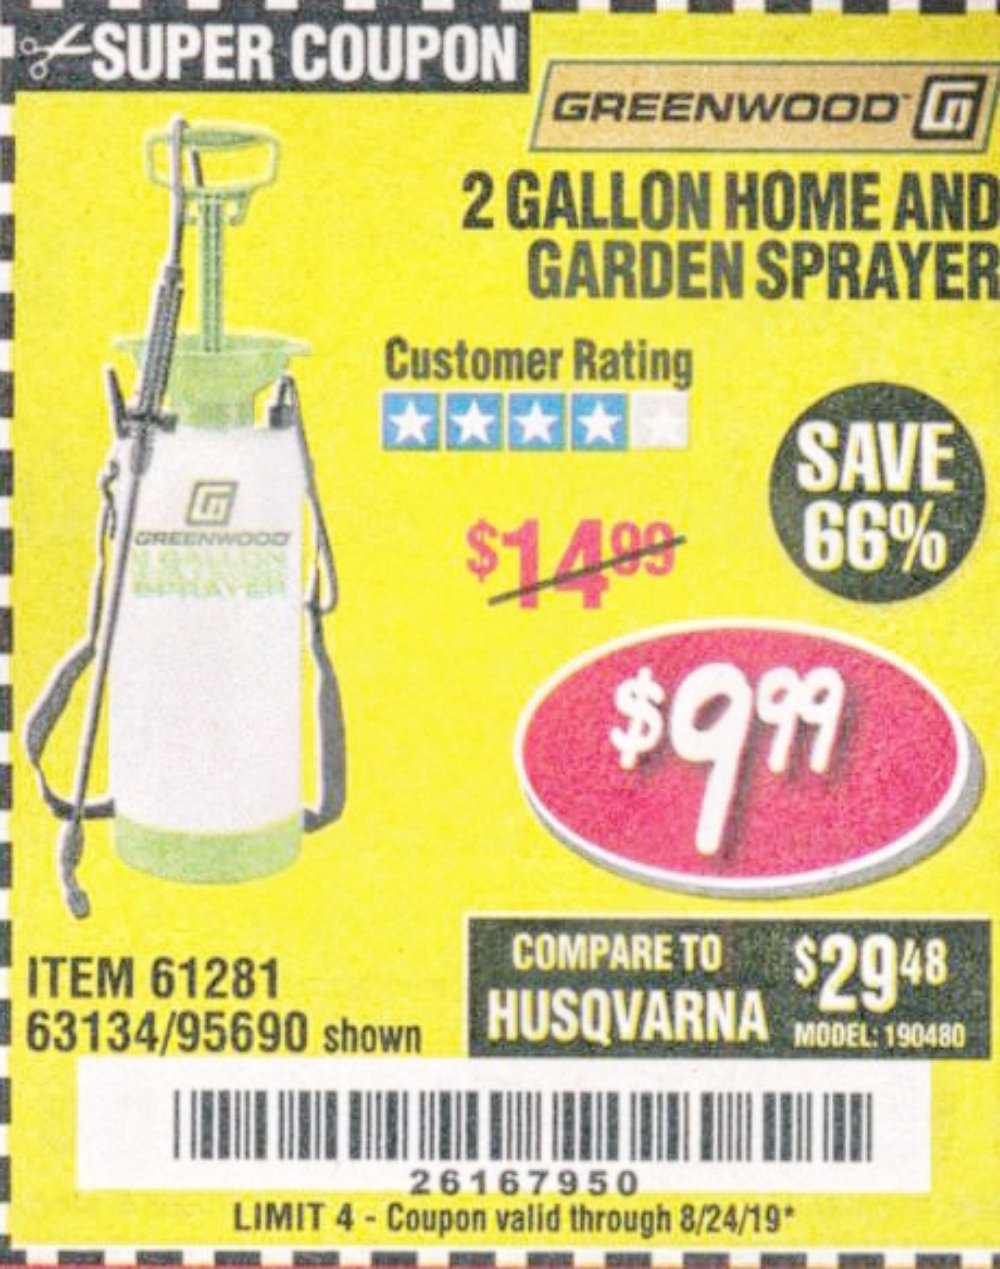 Harbor Freight Coupon, HF Coupons - 2 Gallon Home And Garden Sprayer